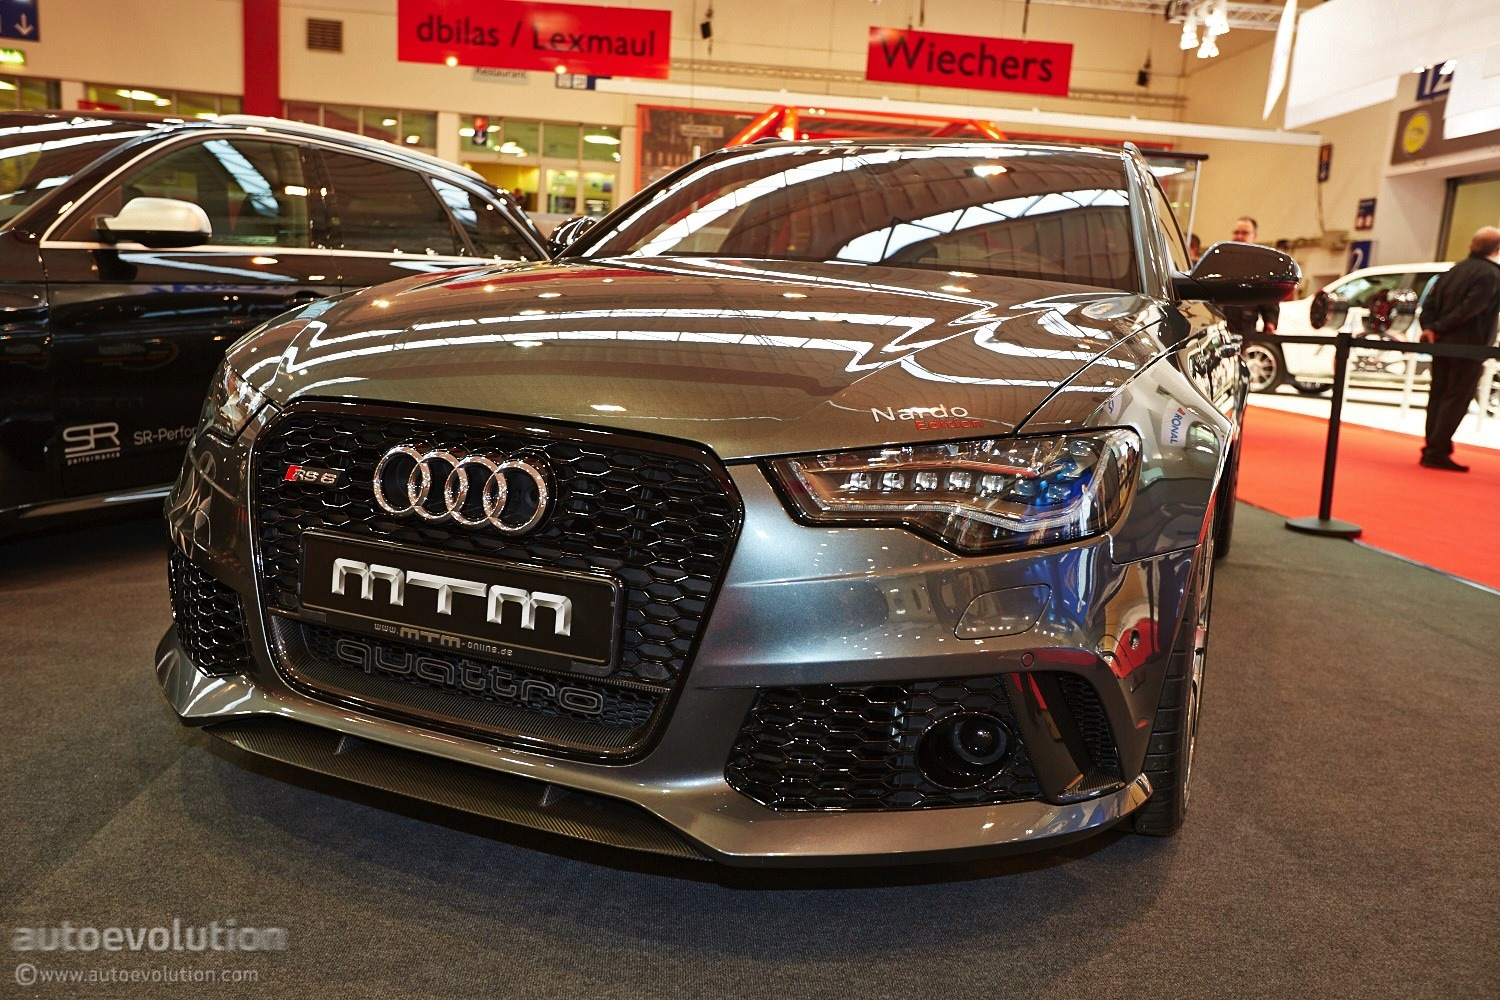 722 HP Audi RS6 by MTM Shows Up at Essen Motor Show 2013 ...